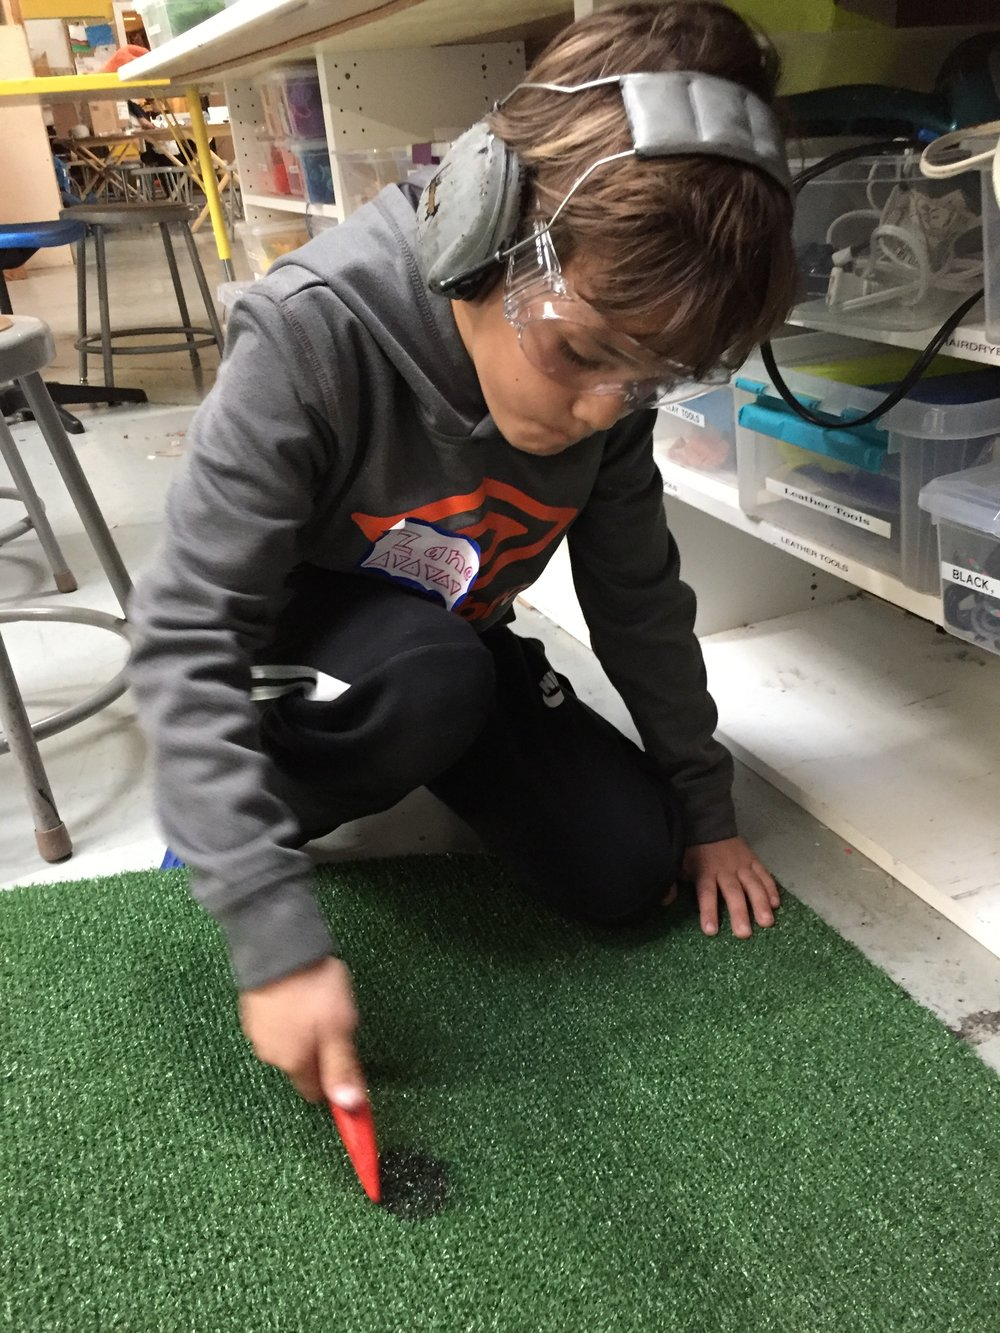 Zane gets the putting green ready for testing!